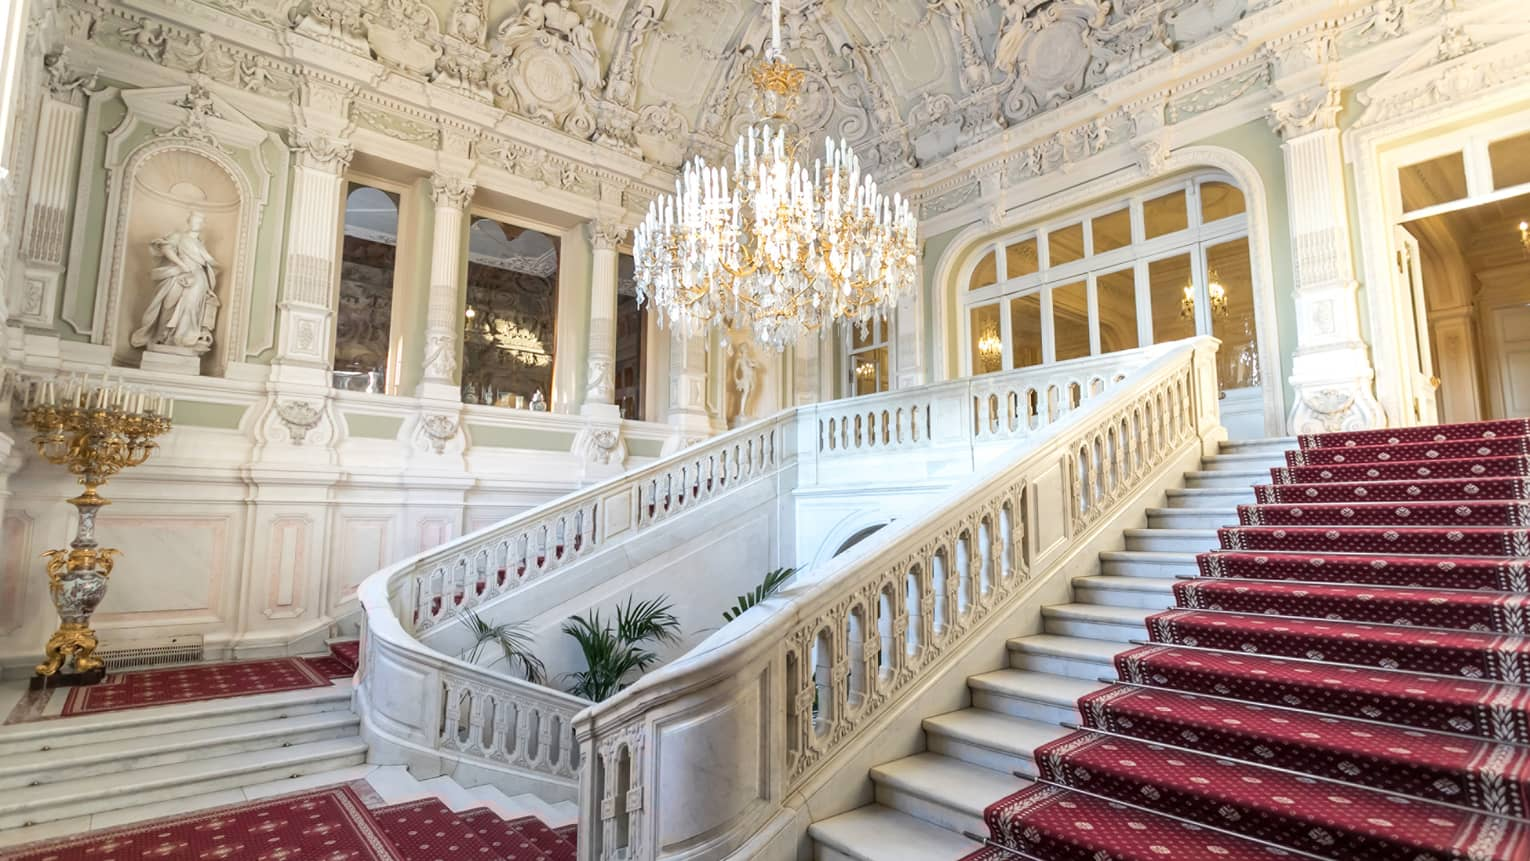 Historic ornate marble stairway with elegant red carpet under large crystal chandelier